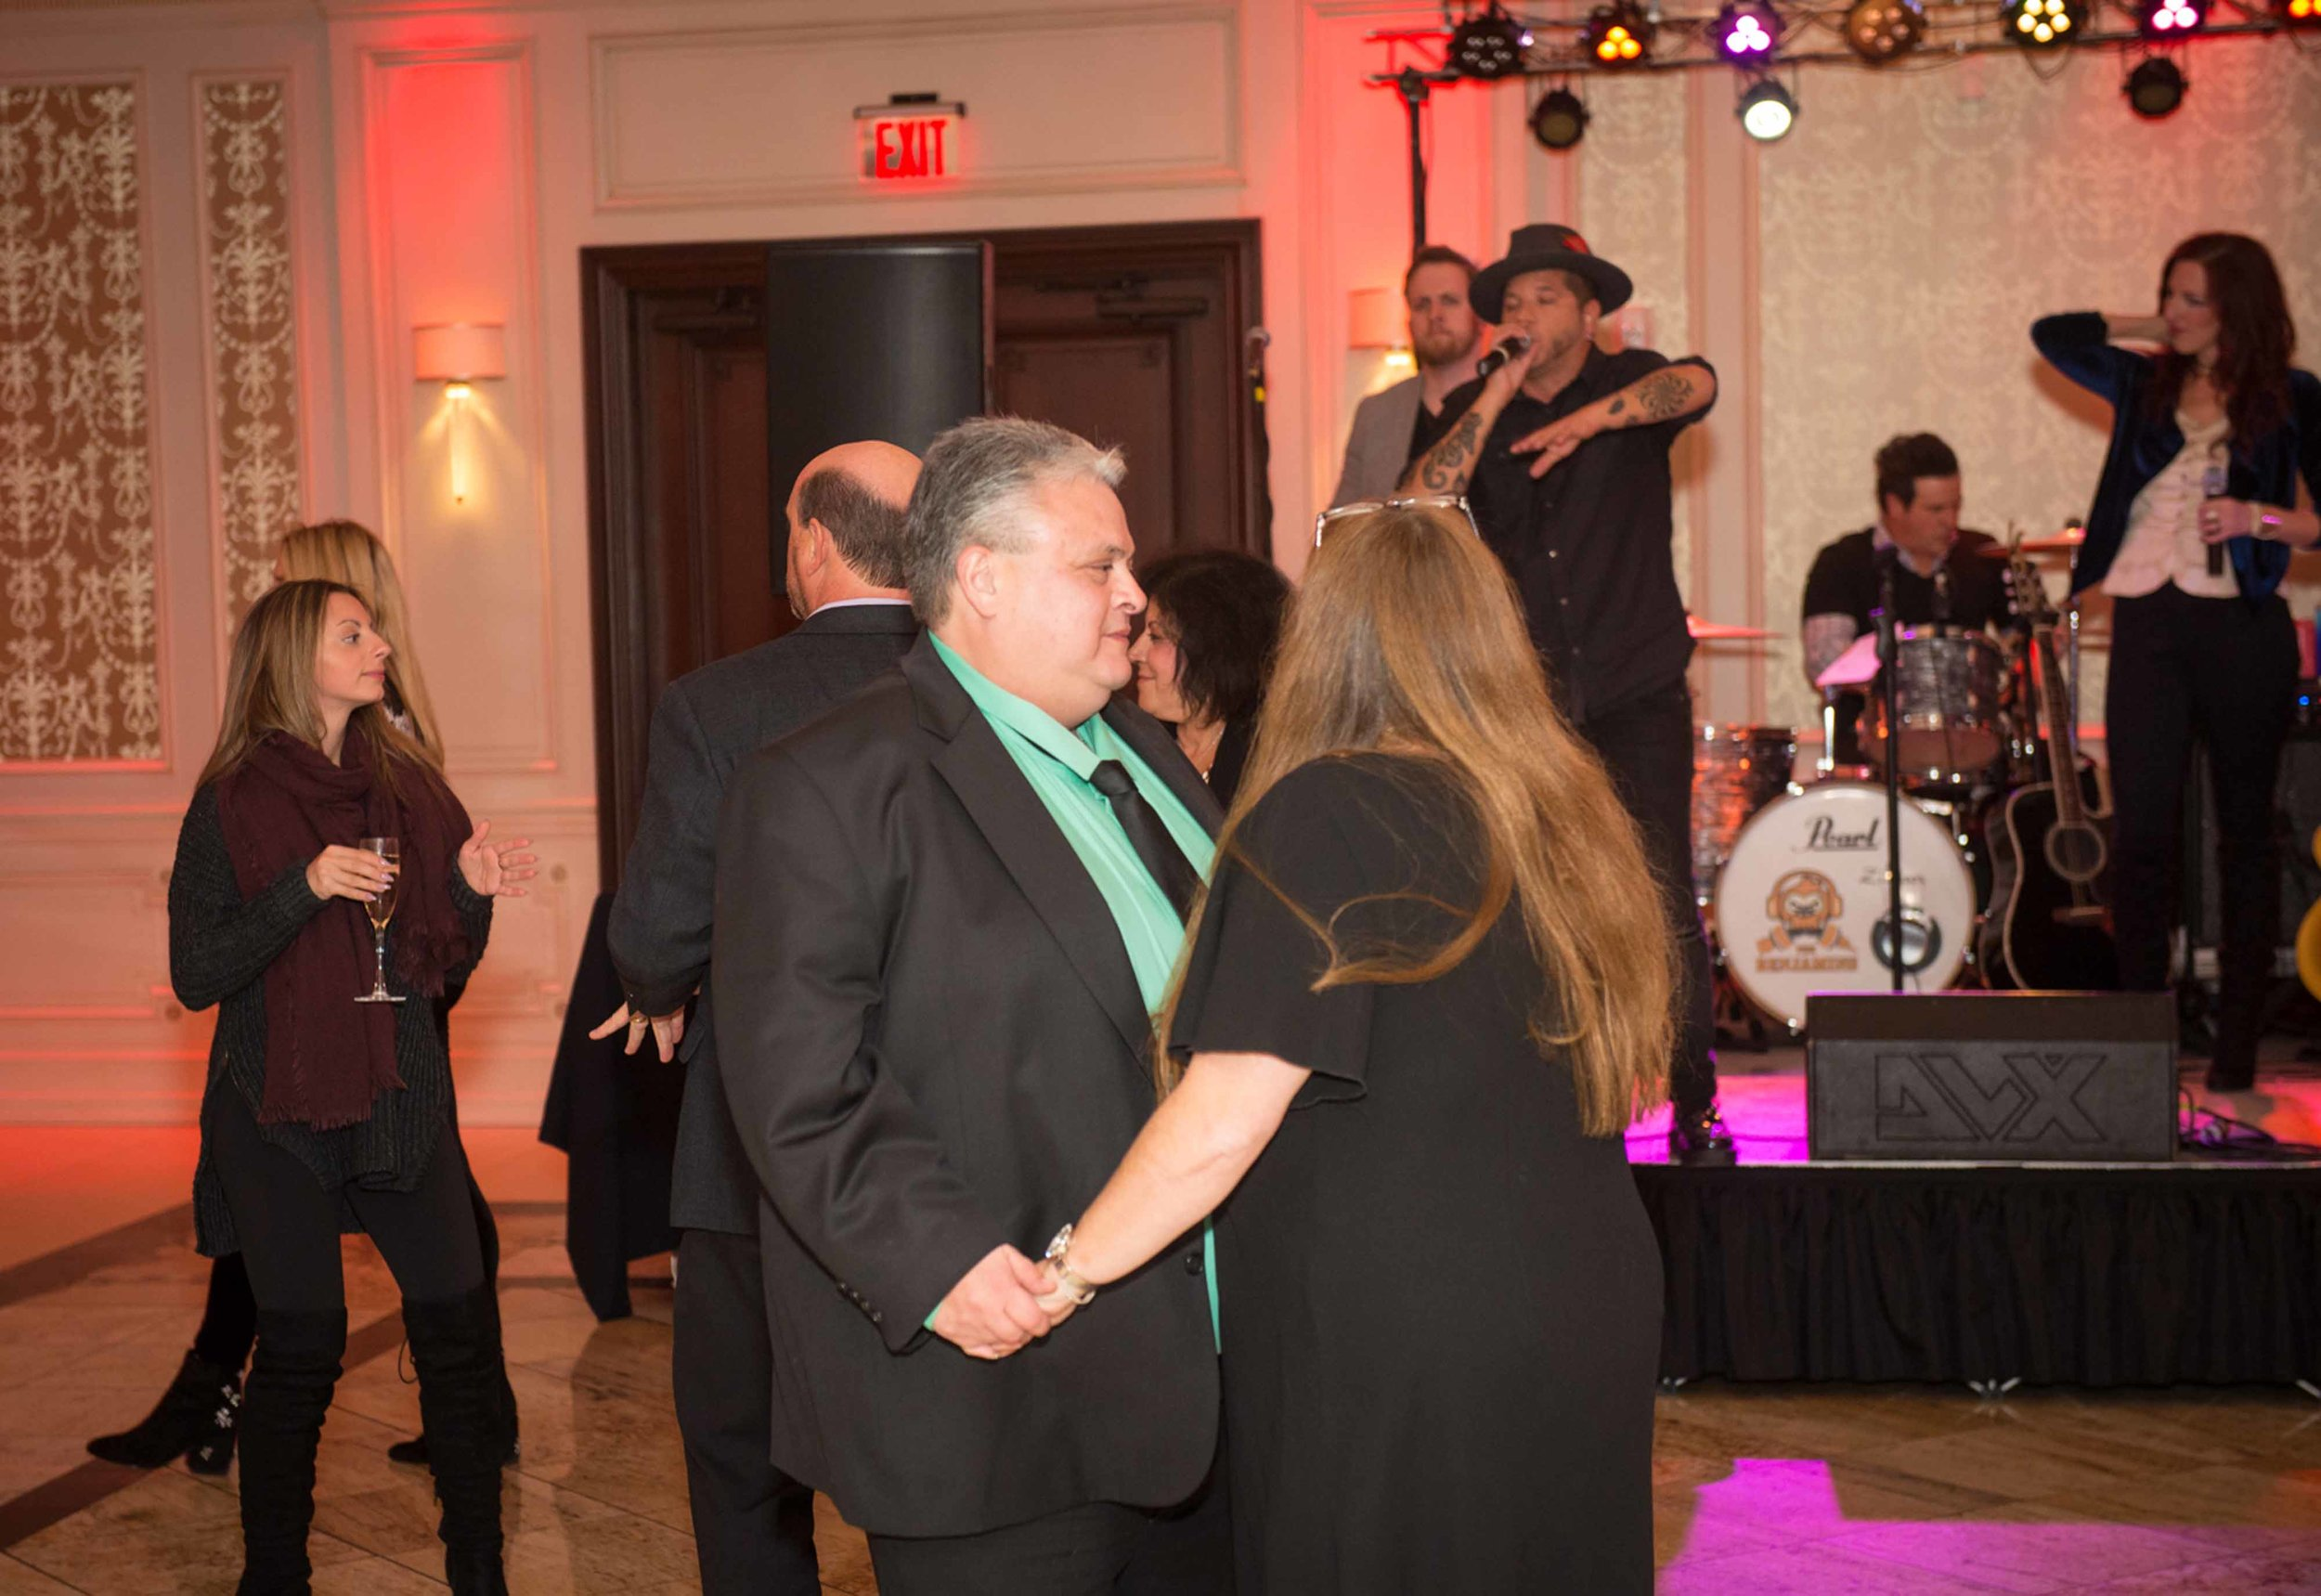 2017-11-10 The EPIC School - Party with a Purpose - Biagios on the Terrace - Paramus NJ-173.jpg